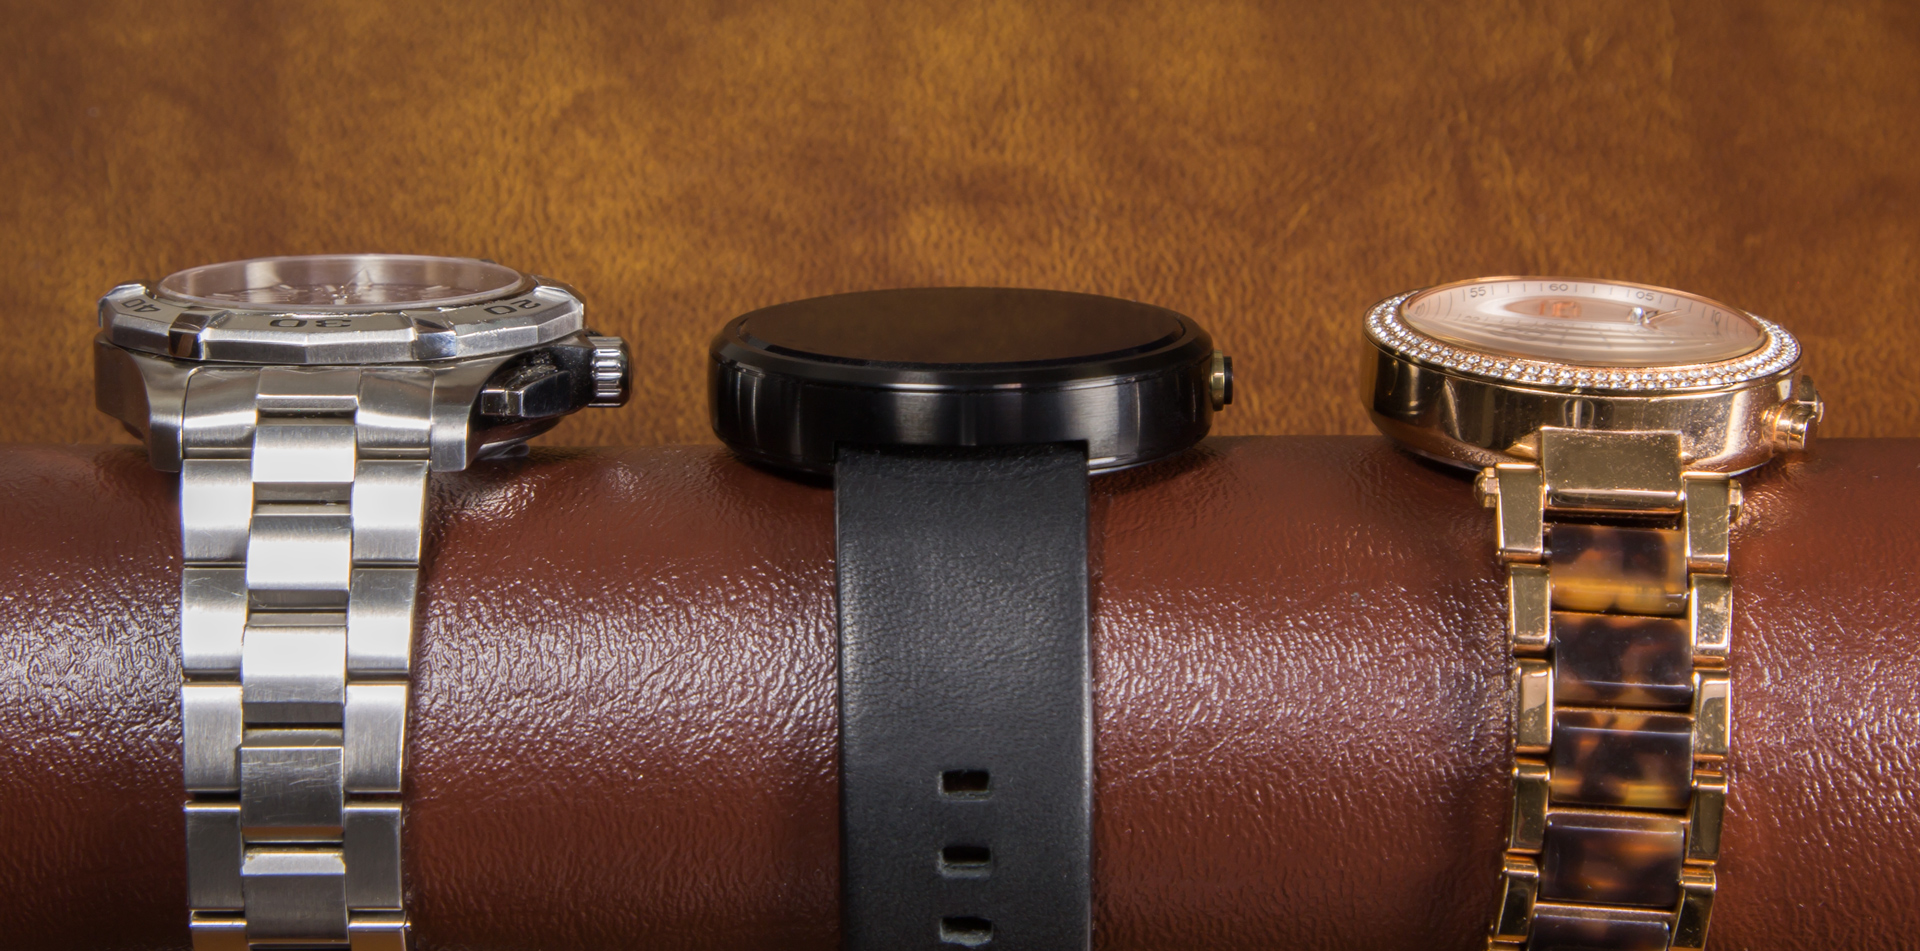 The thickness is well within the standard set by other watches.